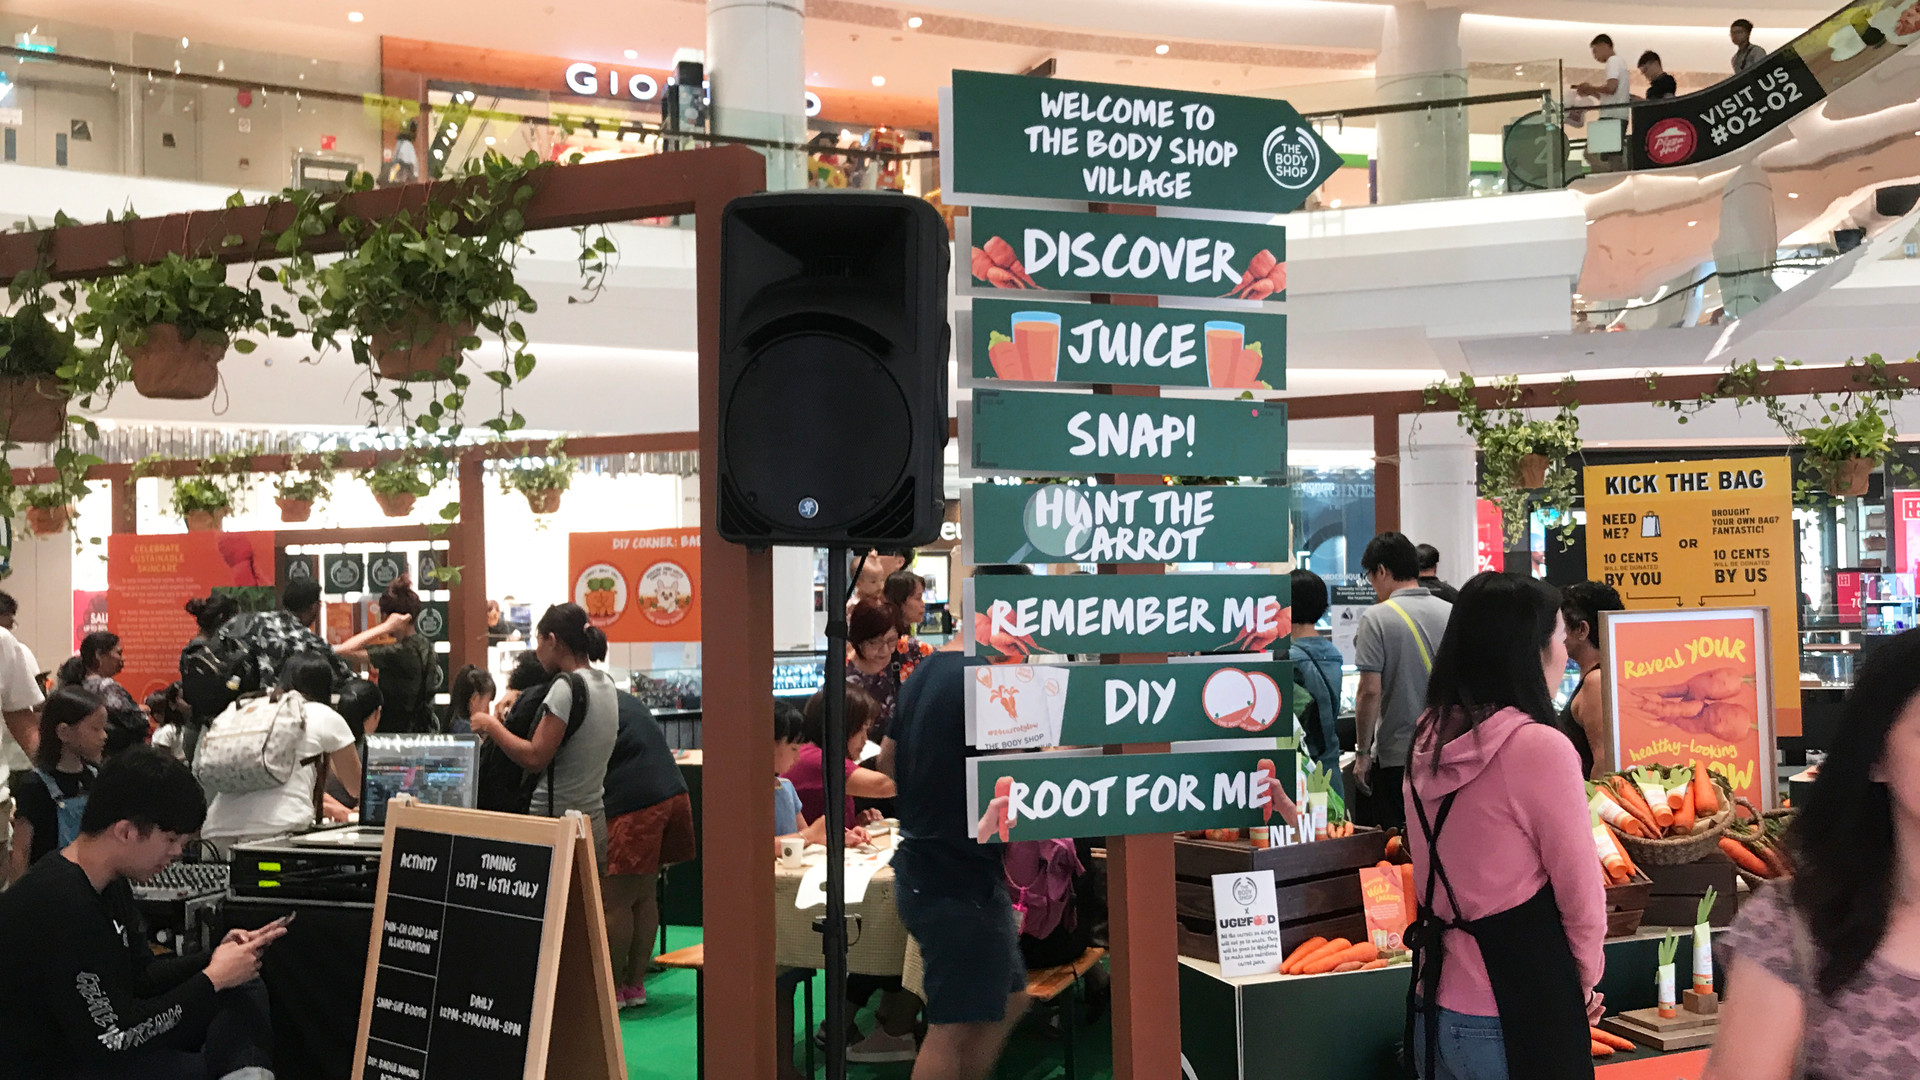 The Body Shop Campaign at Tampines Mall